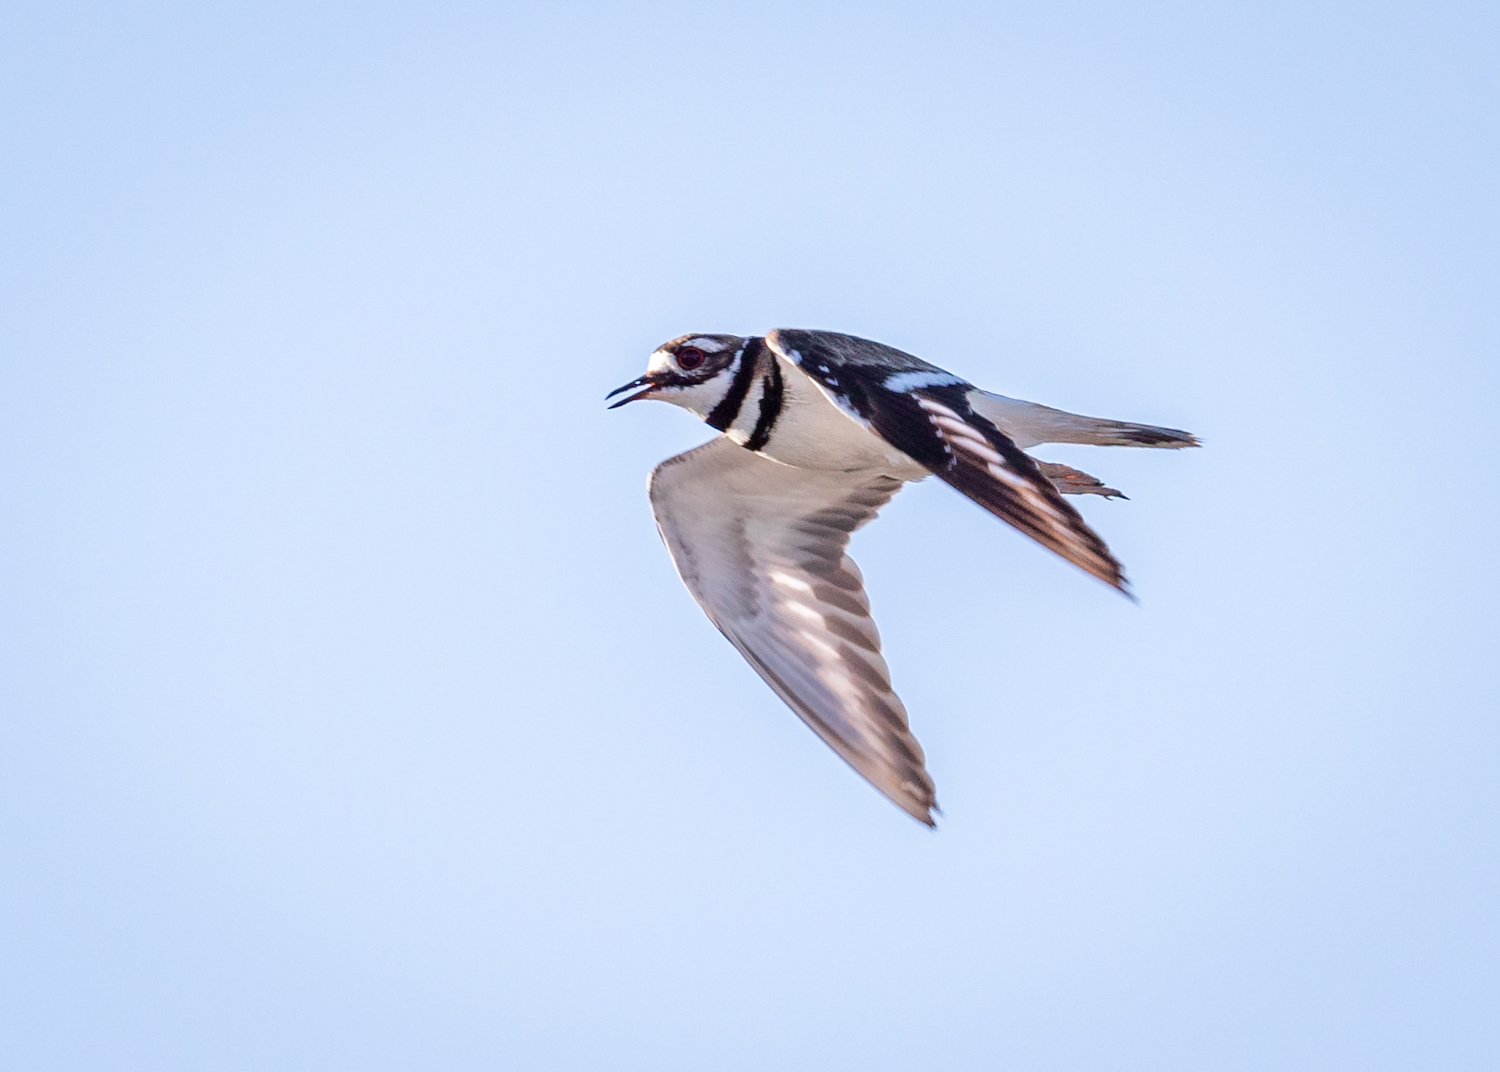 Killdeer flight